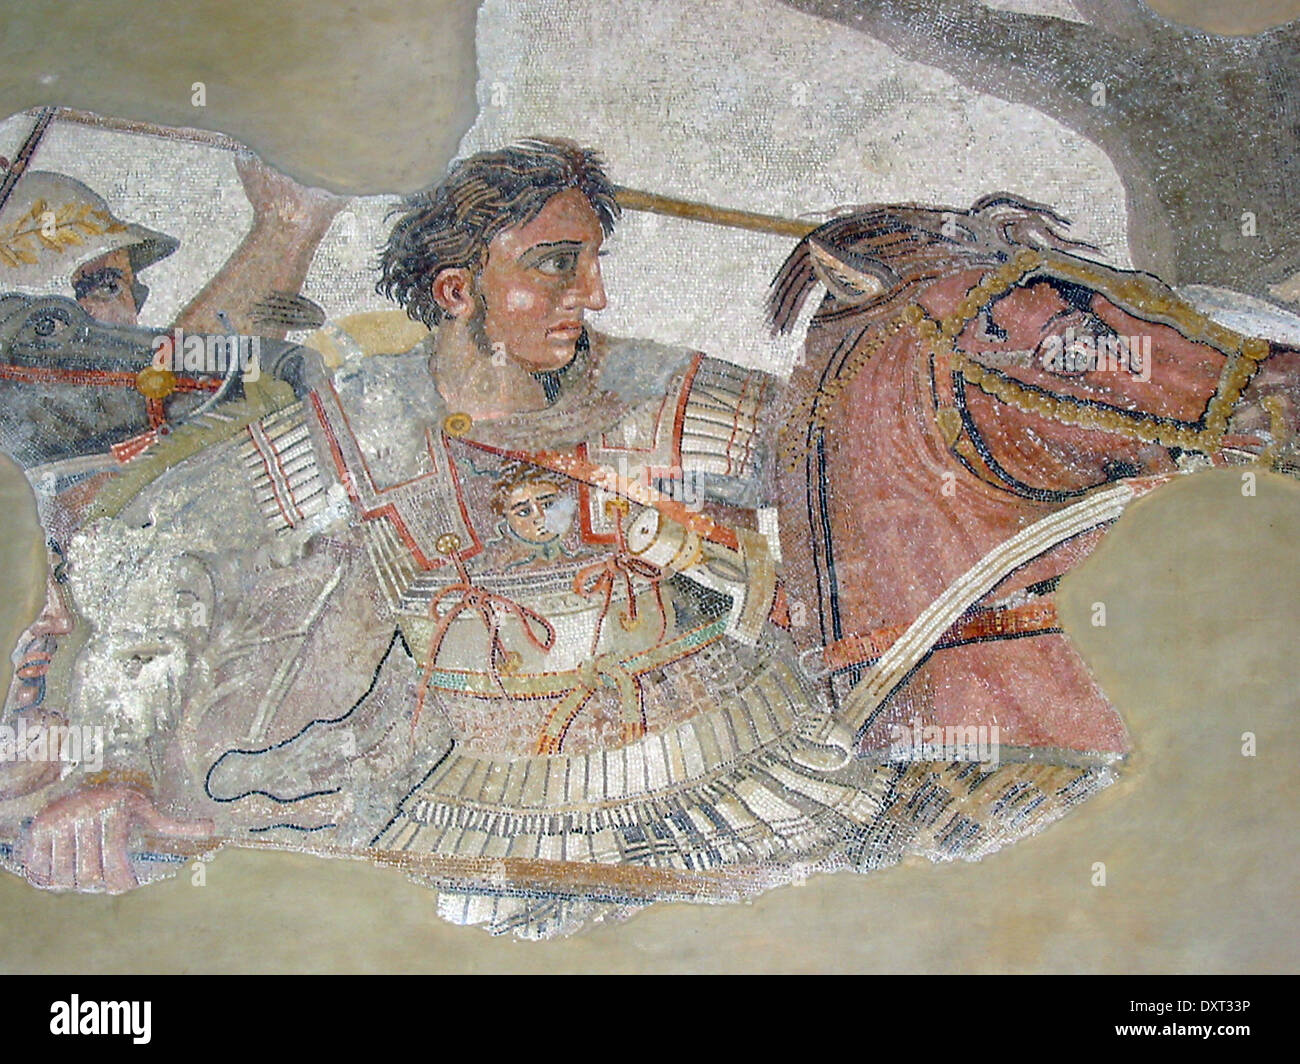 Alexander the Great on the Alexander Mosaic - Stock Image